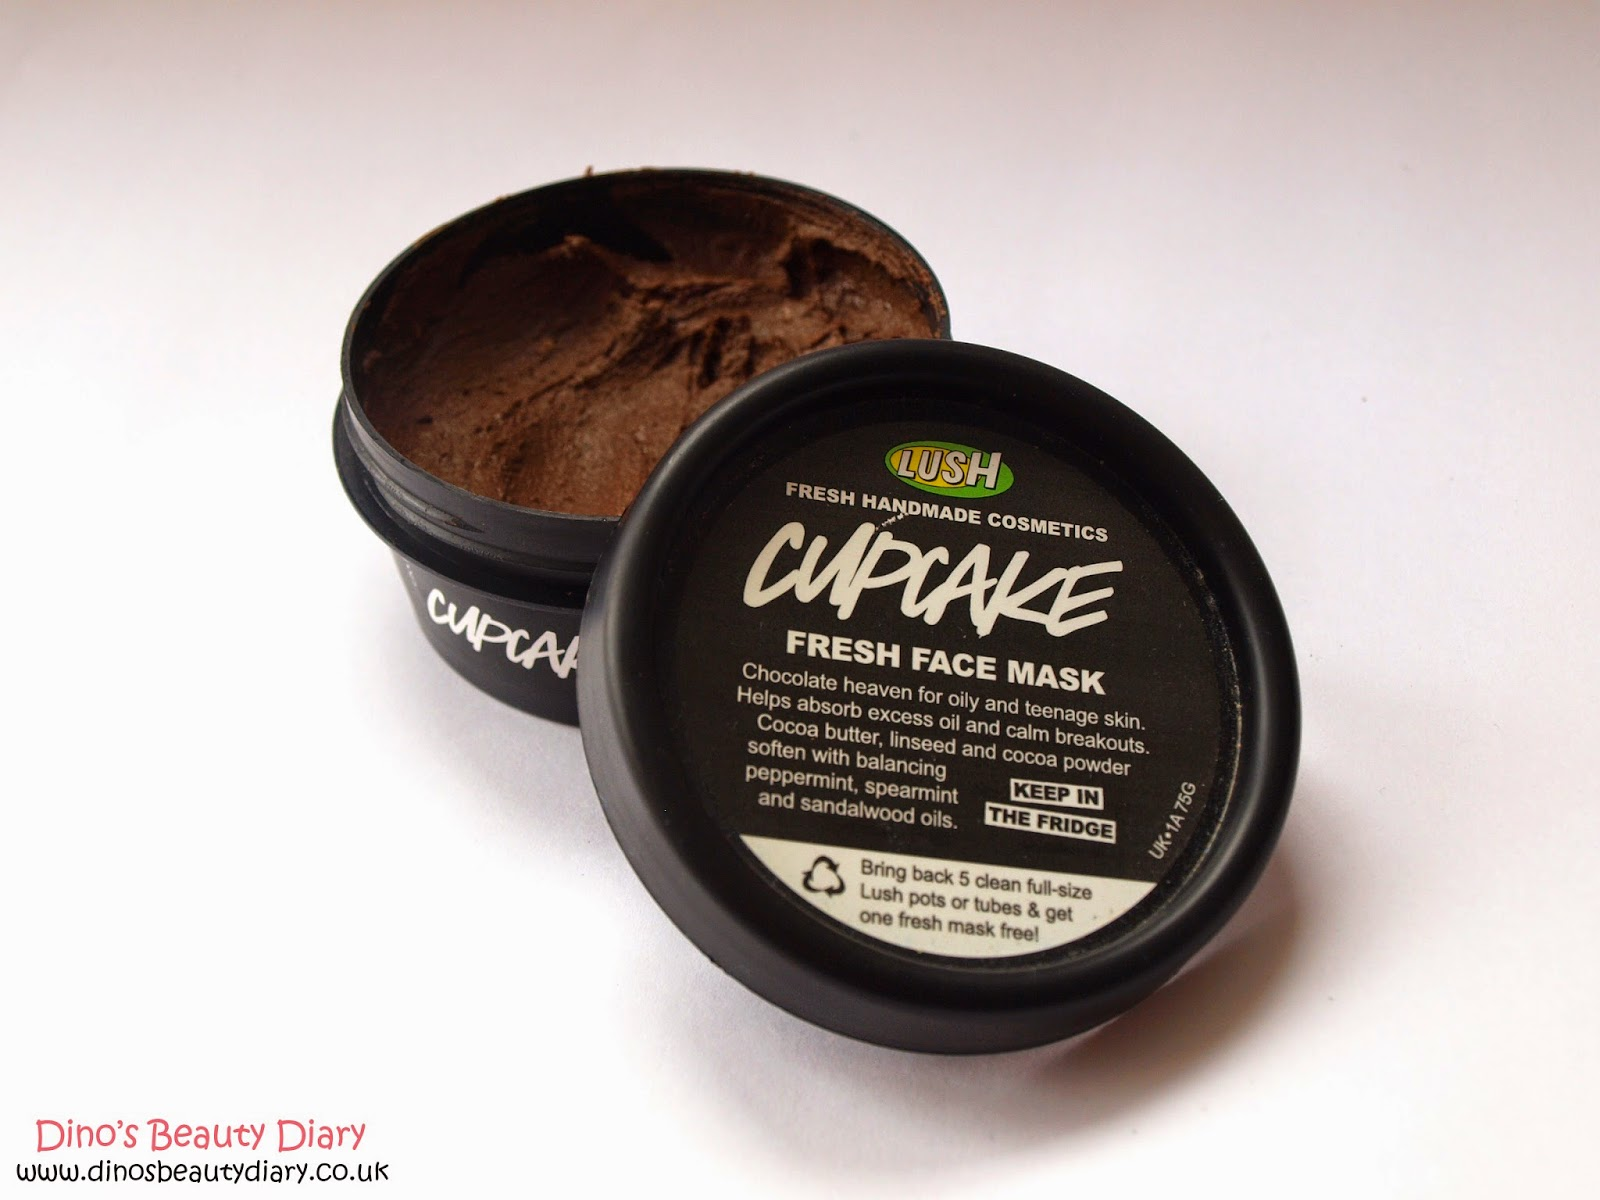 Dino's Beauty Diary - Lush Cupcake Face Mask Review